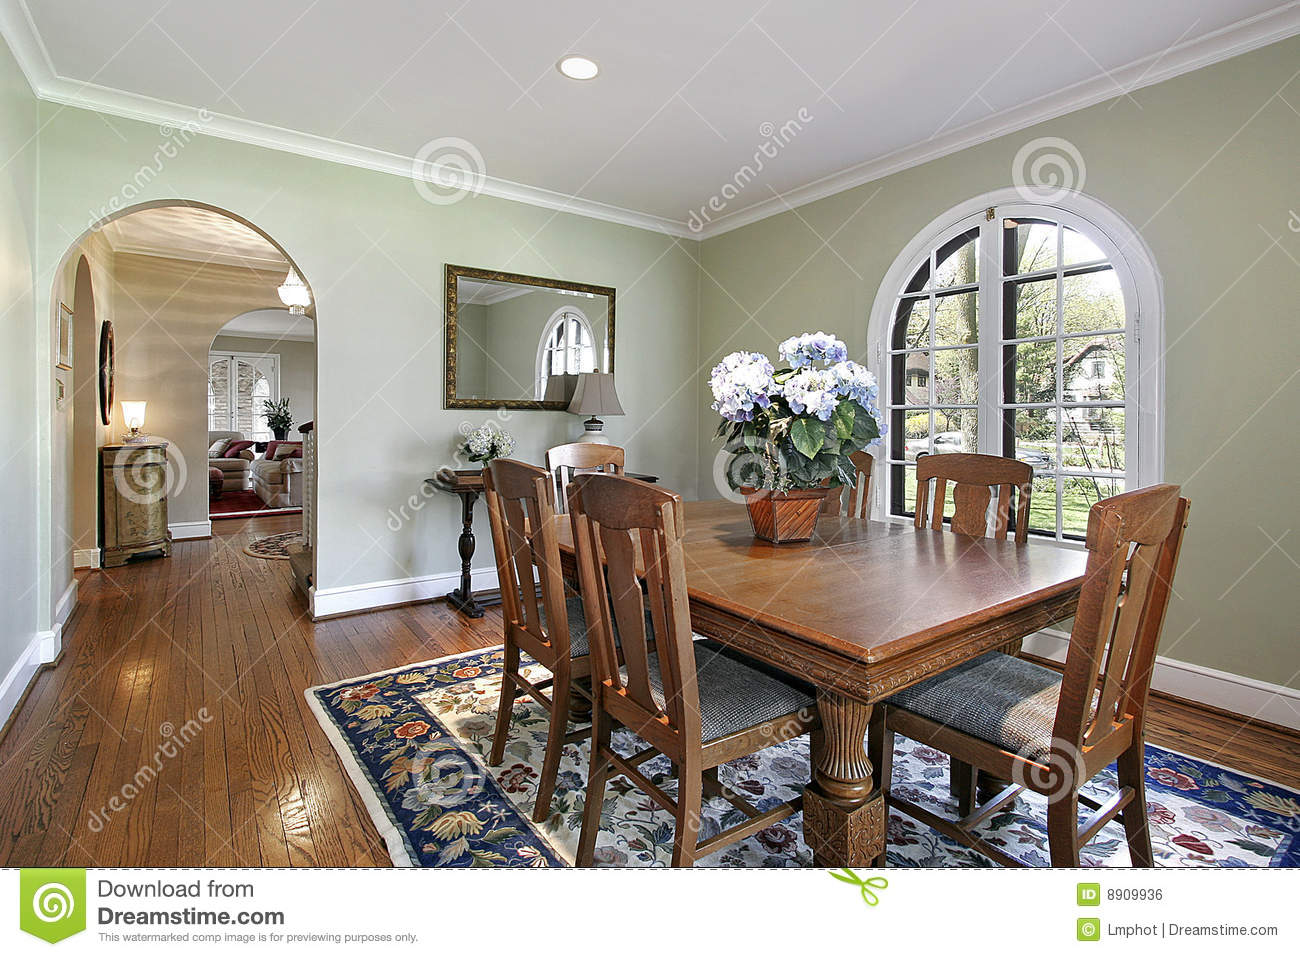 Rooms With Green Walls Captivating Of Dining Room with Green Walls Photo